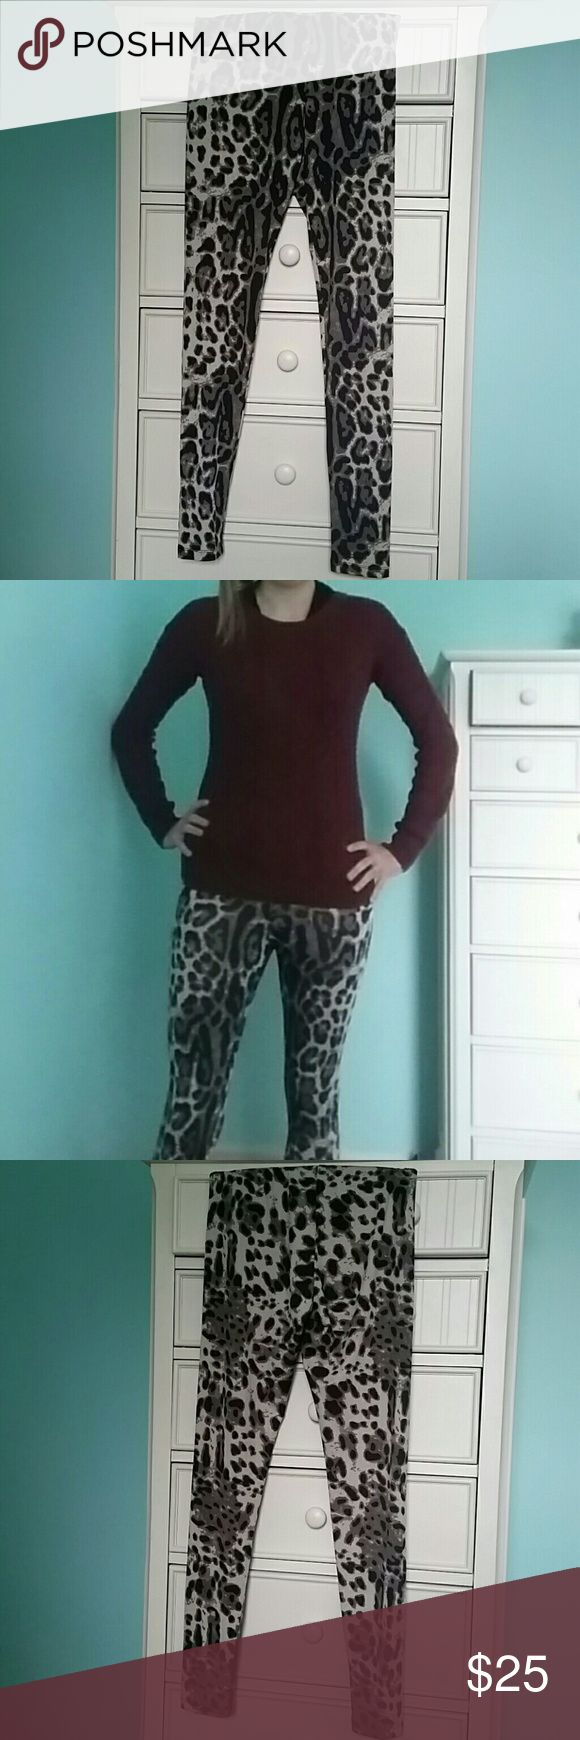 Kardashian Kollection Leggings Cheetah Small These are a gorgeous, silky pair of stretch leggings or tights by Kardashian Kollection. They are from the Fall 2013 Collection. They are have a cheetah or leopard print that is black, brown, and tan/beige/cream. The unstretched waist is 12.5 inches and the unstretched length is about 37 inches. They are used, but in good condition! Offers welcome! Thanks for looking! ☺ Kardashian Kollection Pants Leggings